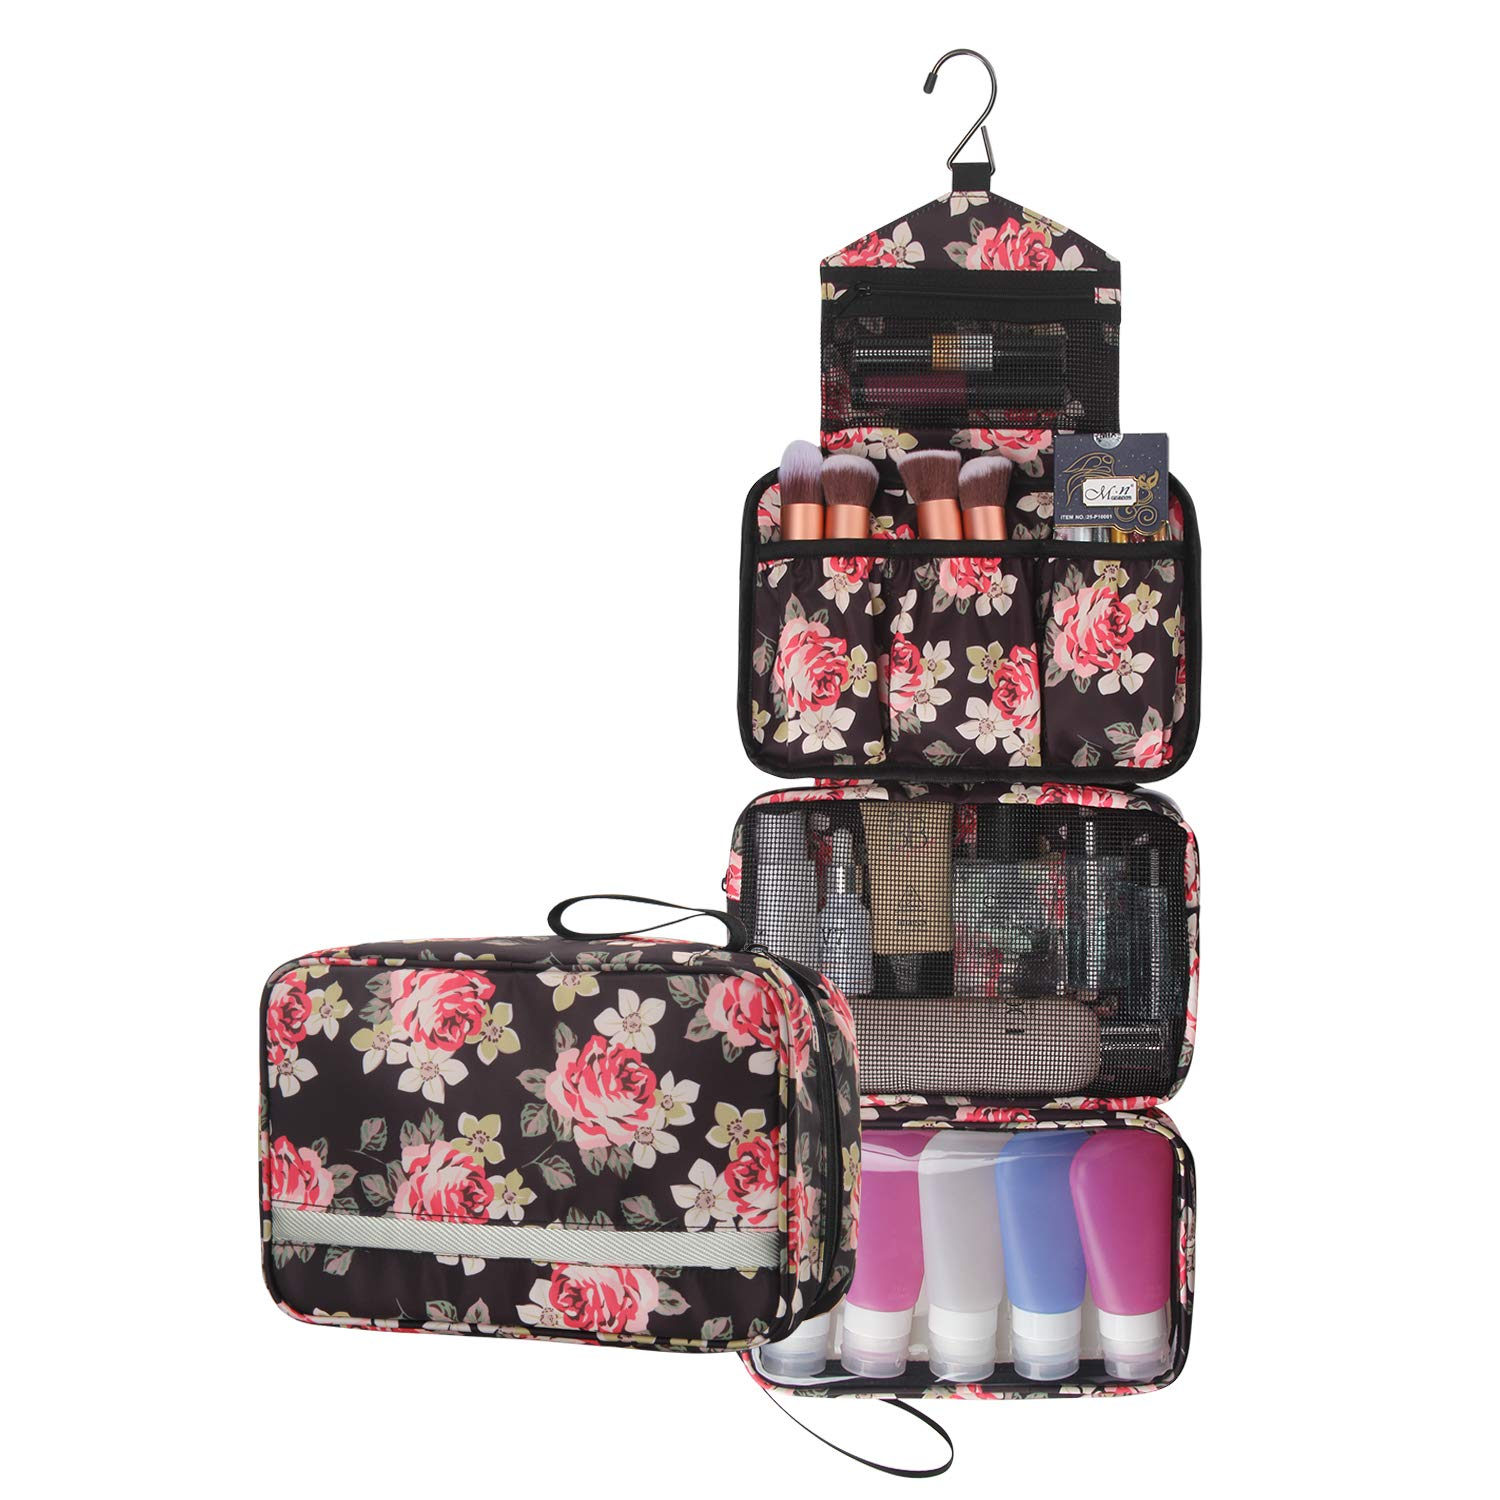 Travel Toiletry Bag Business Toiletries Bag For Men Shaving Kit Waterproof Compact Hanging Travel Cosmetic Pouch Case For Women Black Peony Pattern